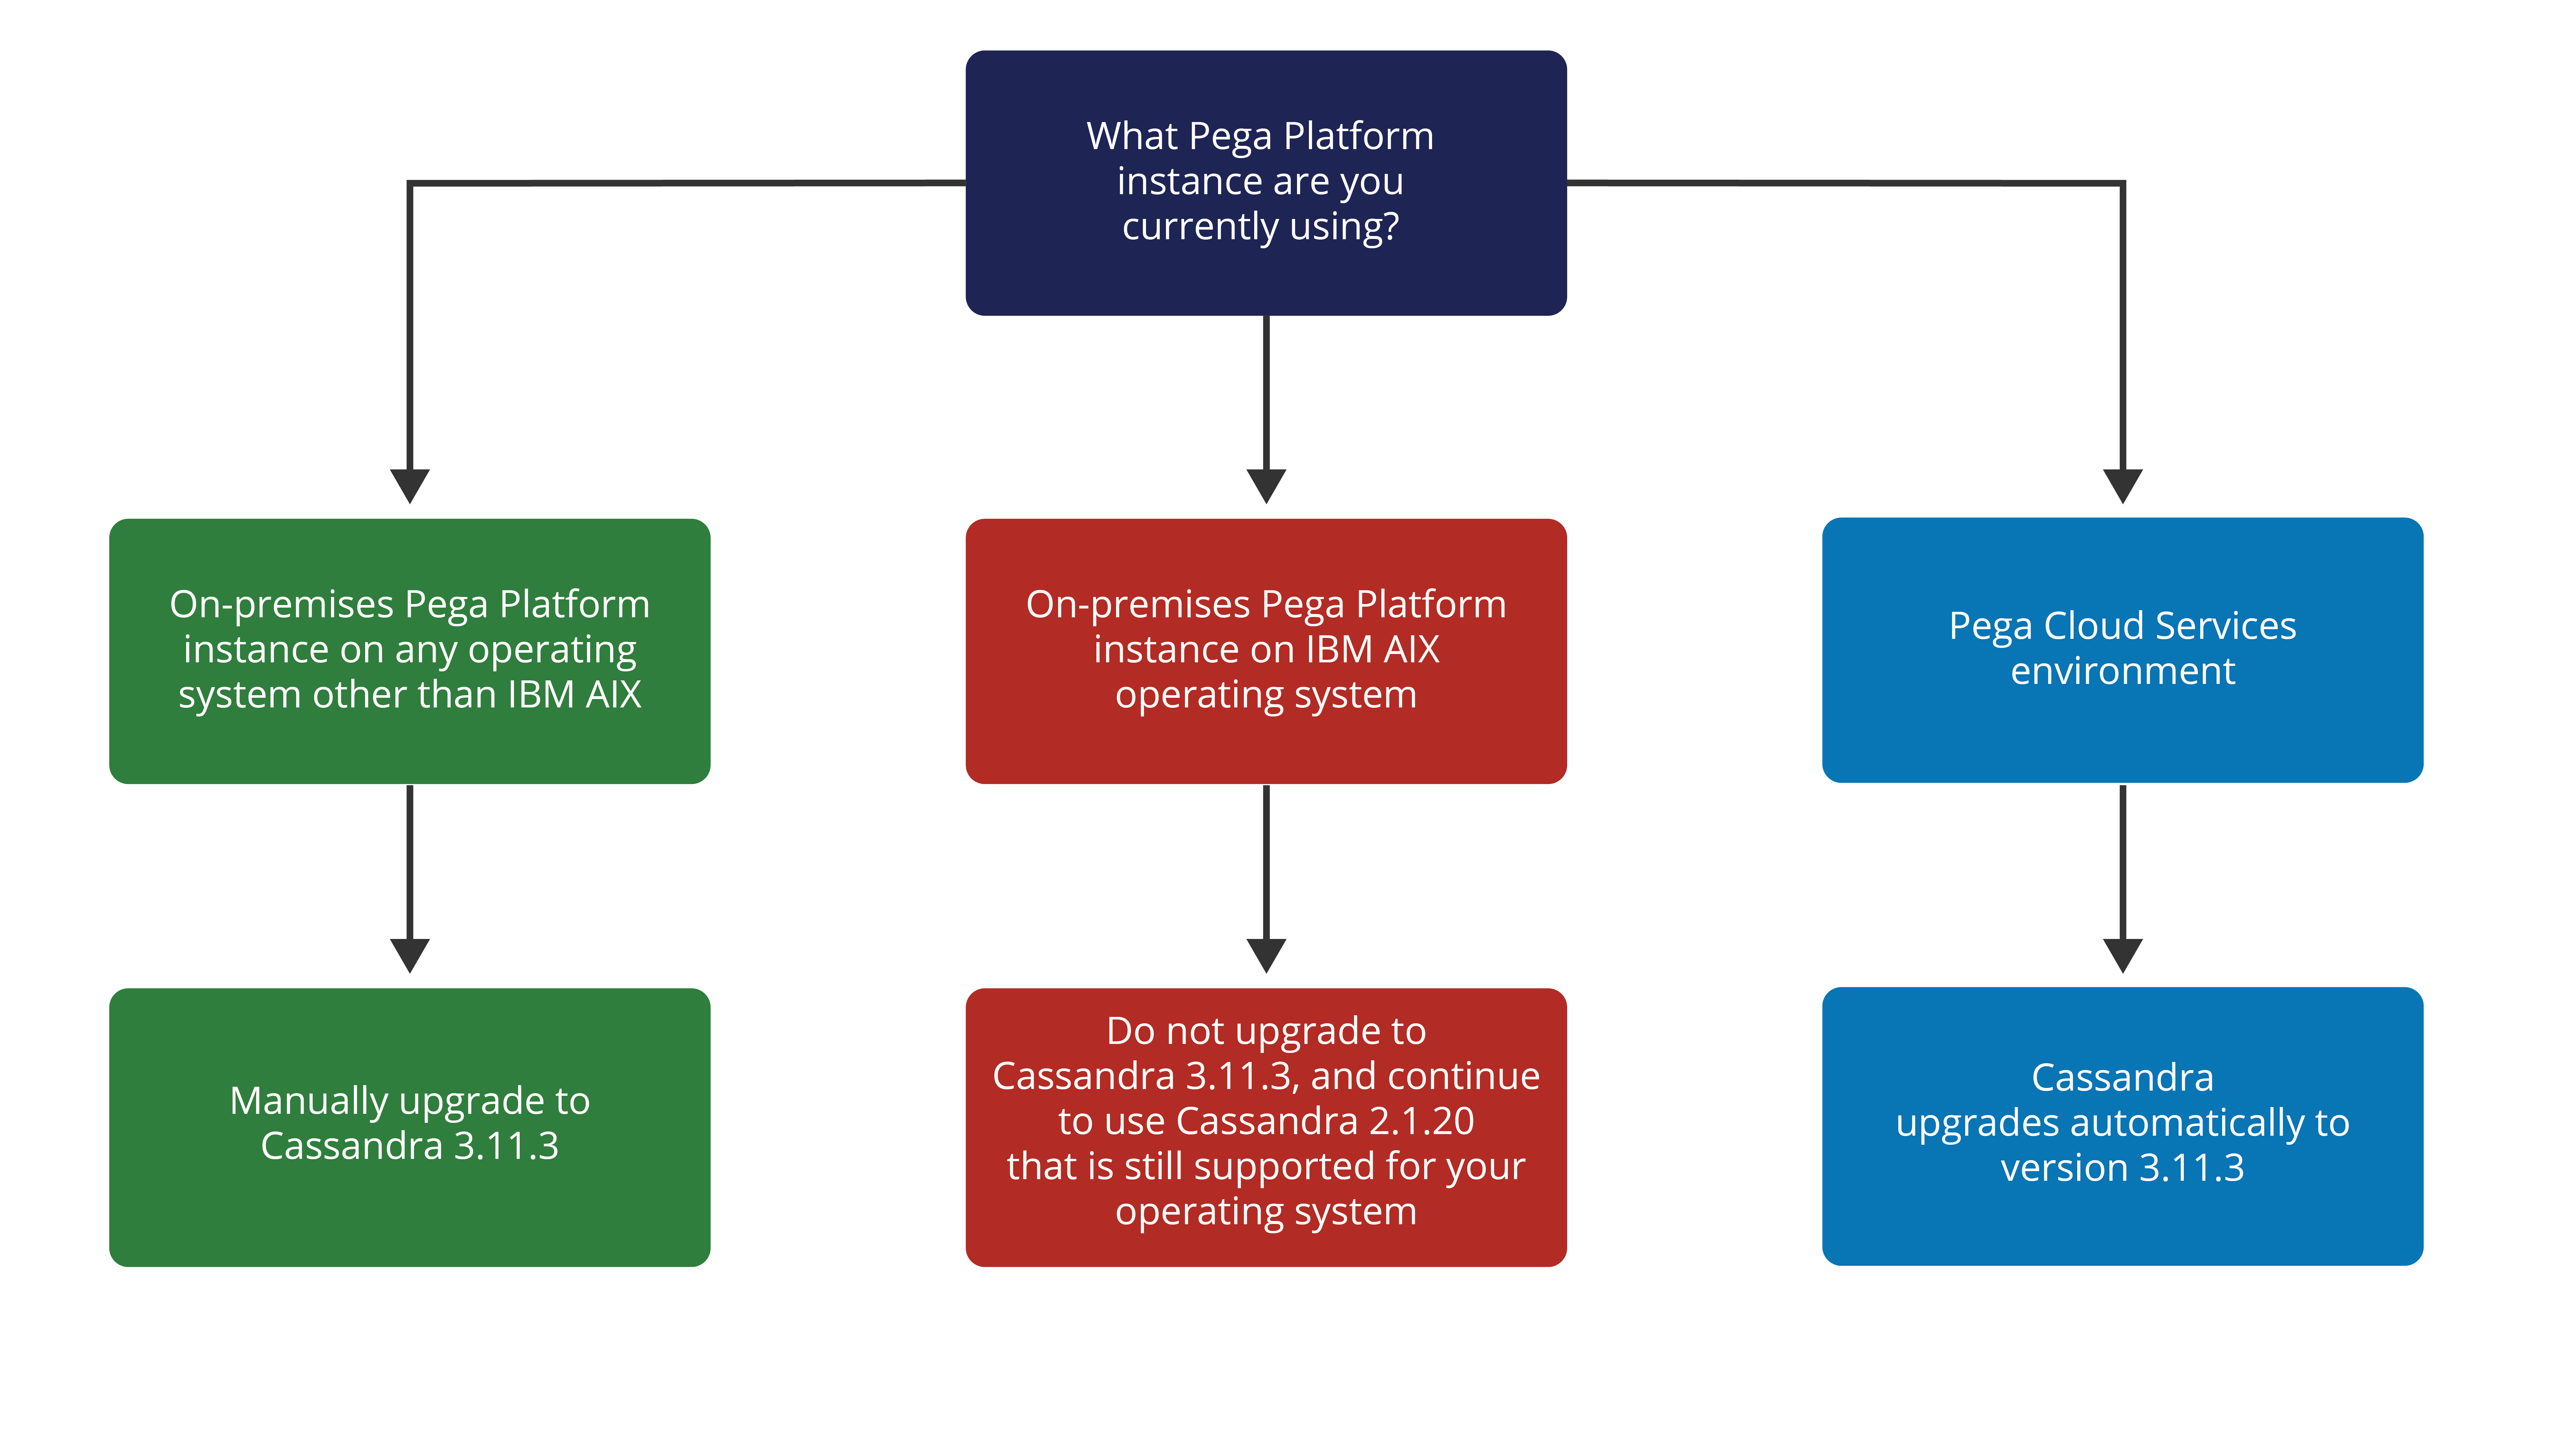 Diagram showing what steps to take to upgrade to Cassandra 3.11.3 depending on your Pega Platform instance